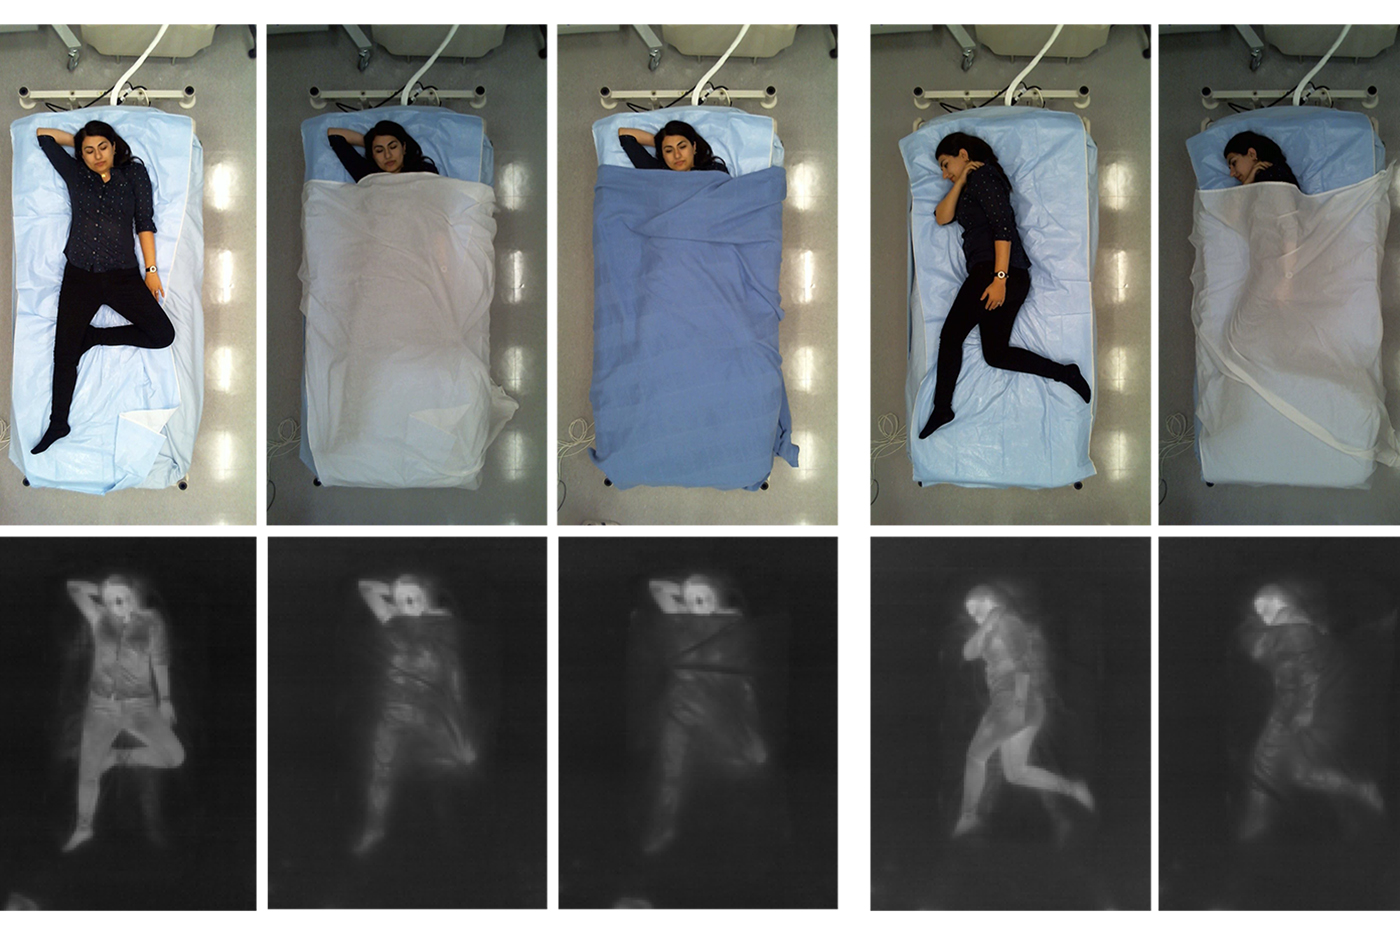 series of sleep positions showing person in bed